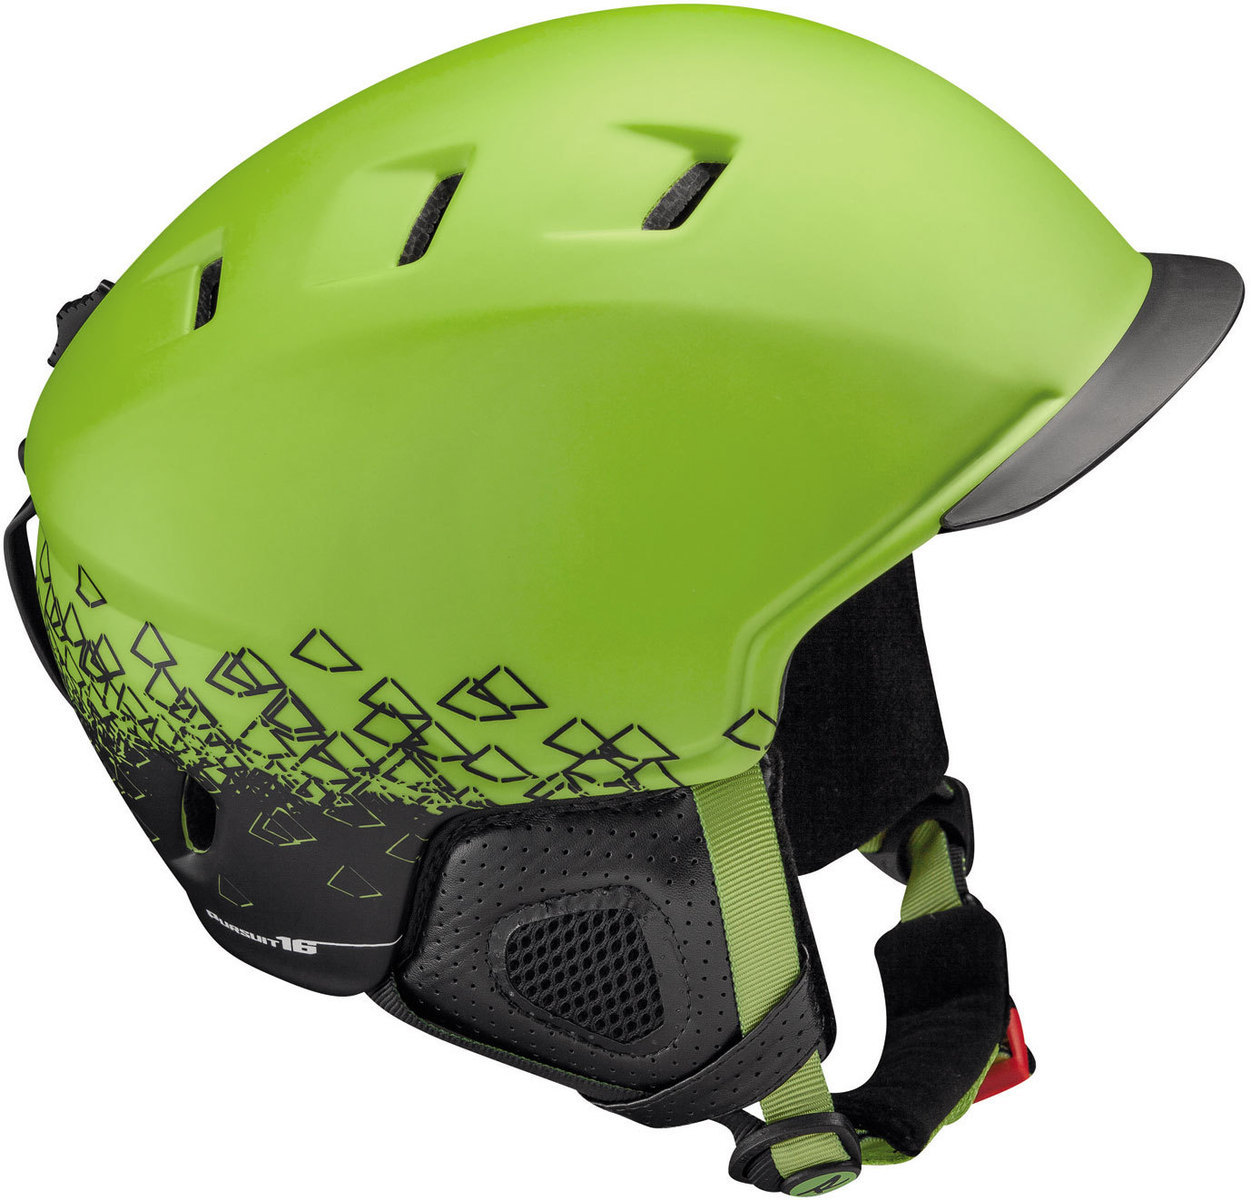 Kask Rossignol Pursuit 16 zielony